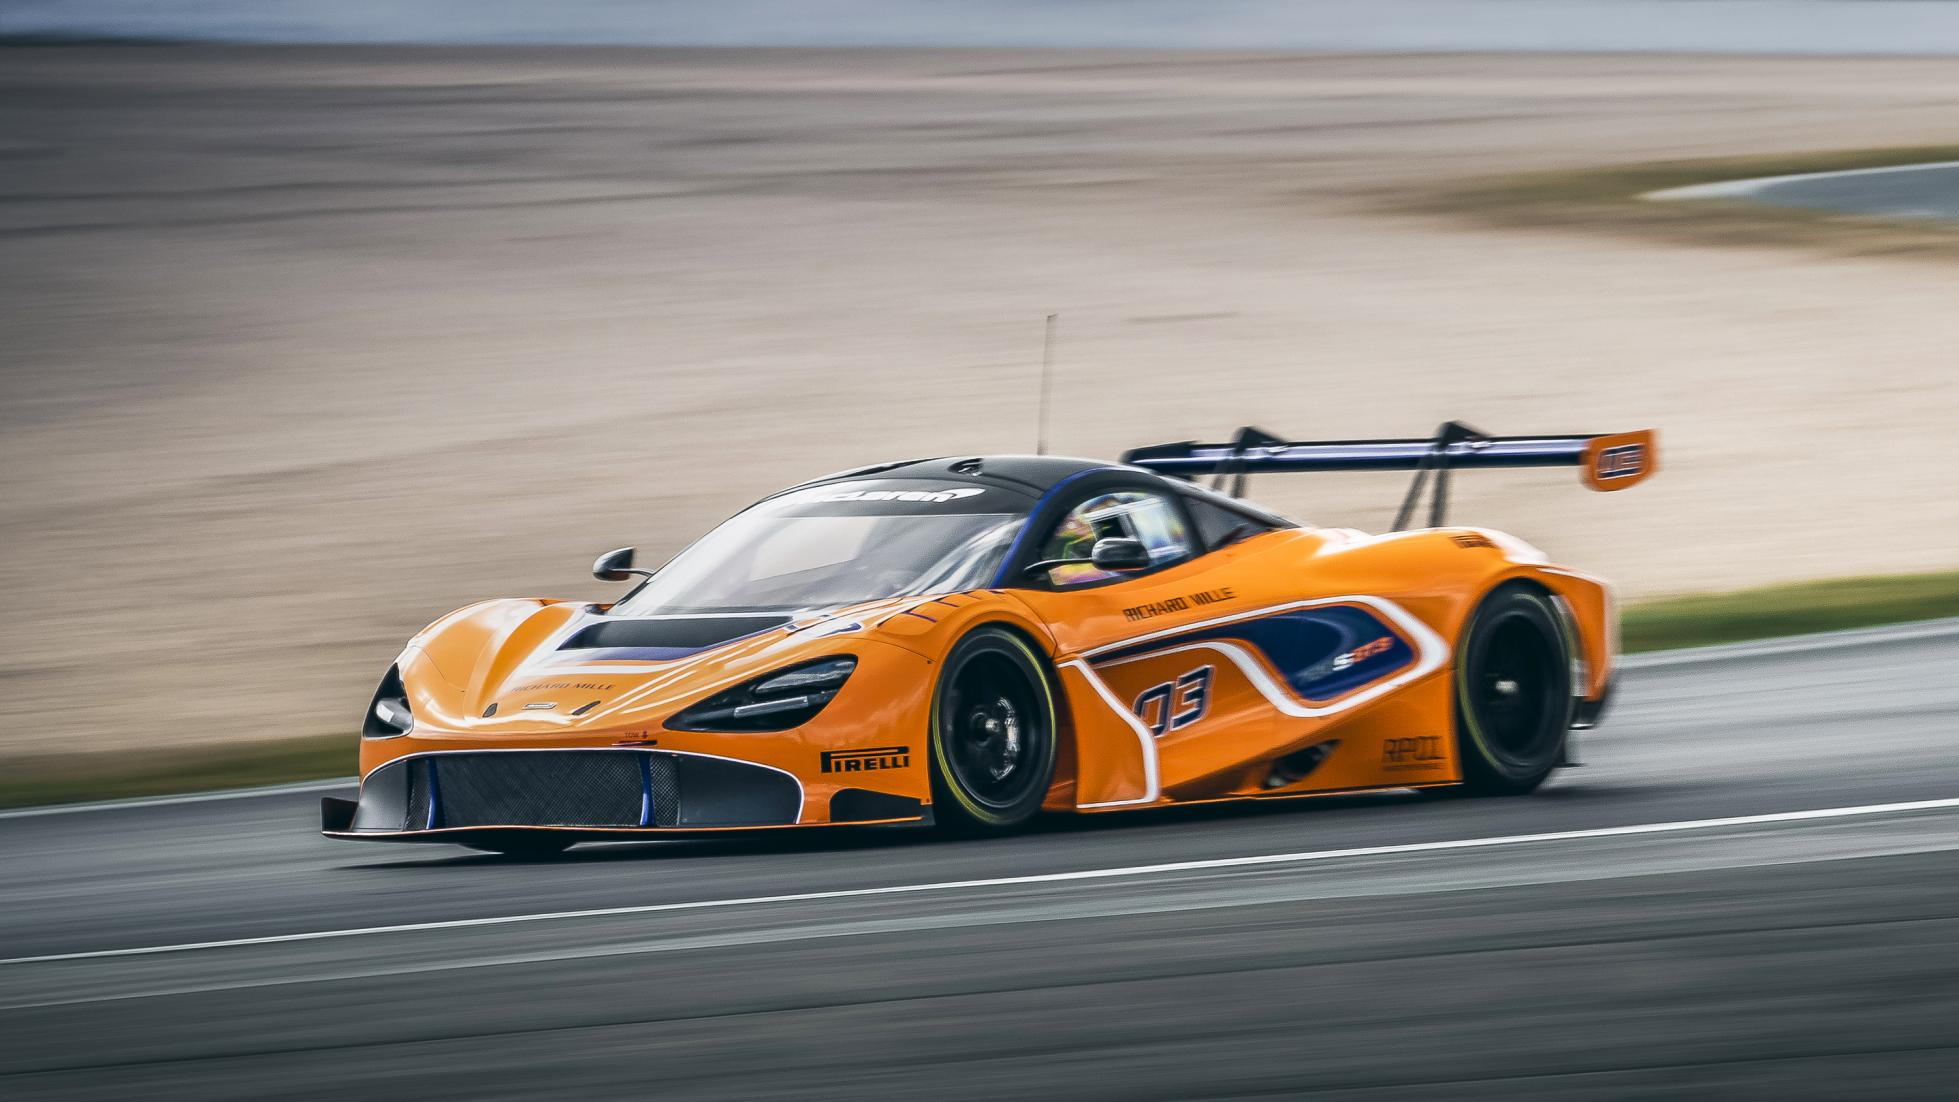 MCLAREN 720S GT3 MAKES ITS RACING DEBUT - MCLAREN BEVERLY HILLS